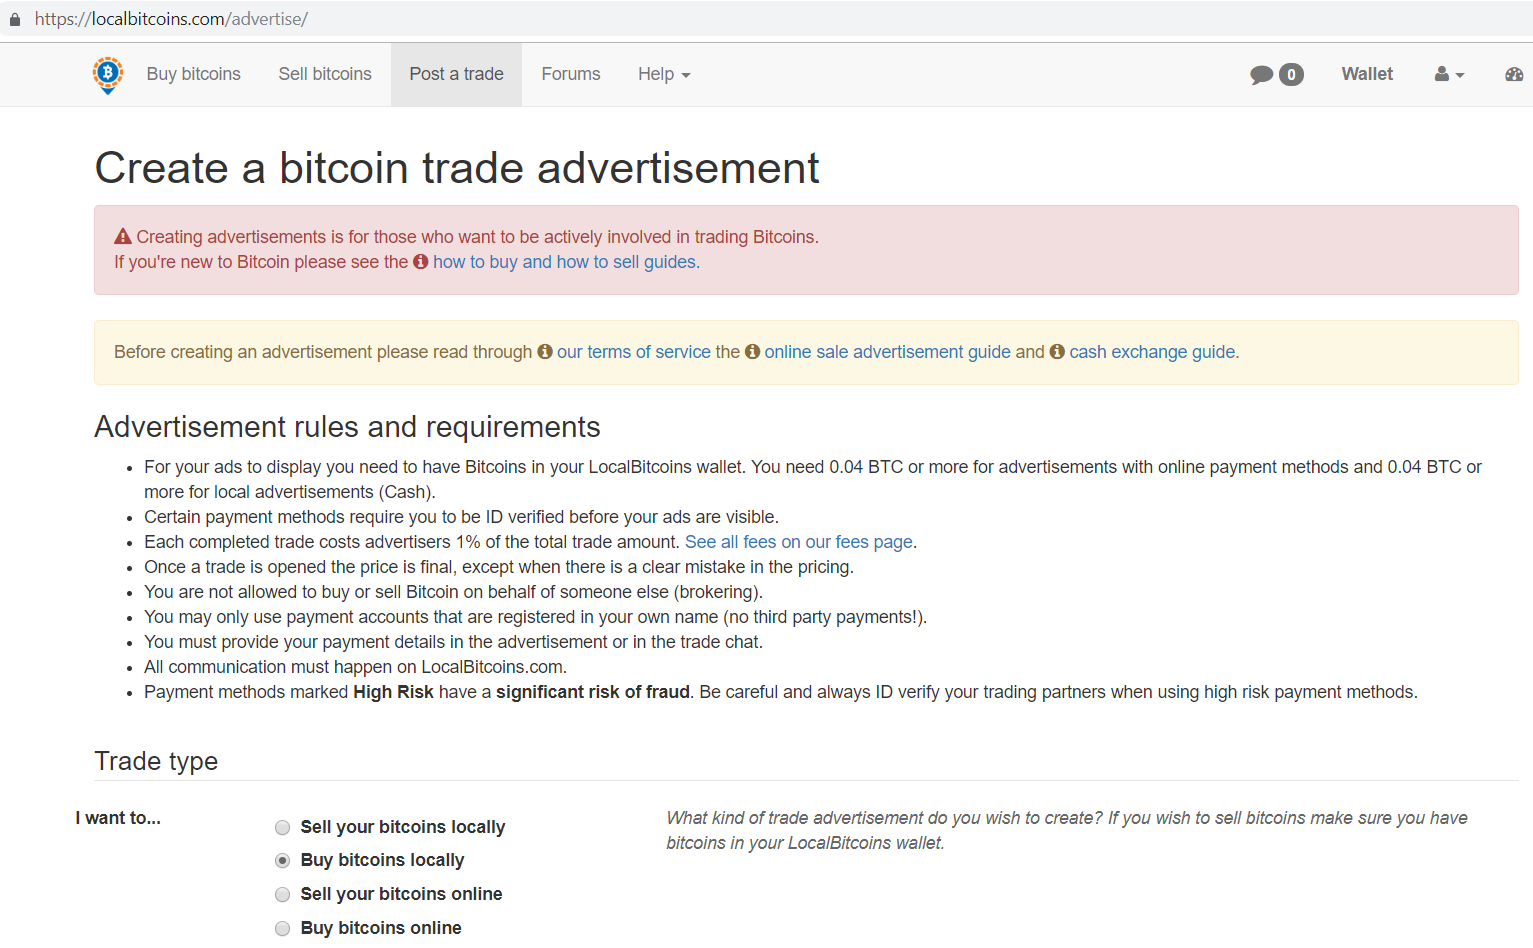 Create a bitcoin trade advertisement screen.